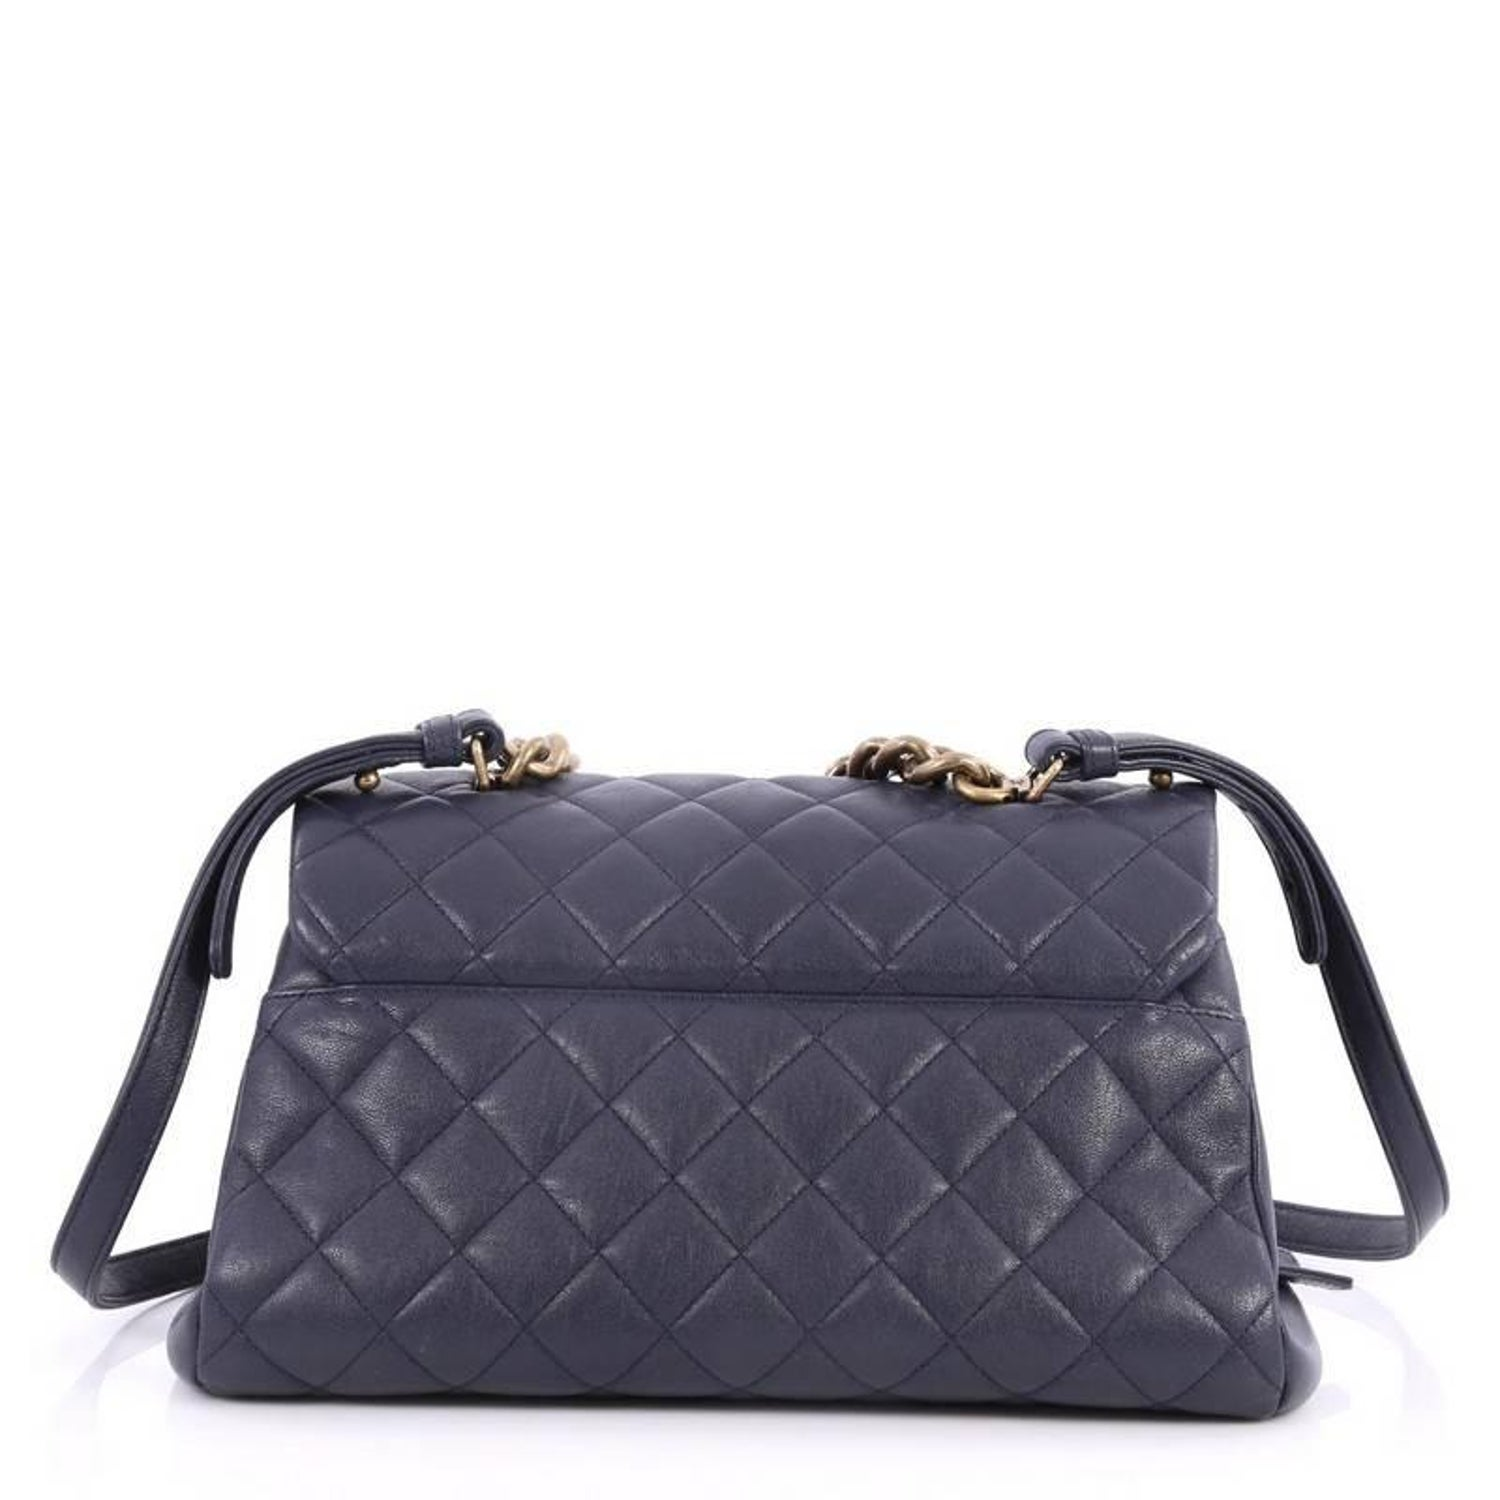 fba19be9a4d0 Chanel Trapezio Crossbody Bag Quilted Sheepskin Large at 1stdibs